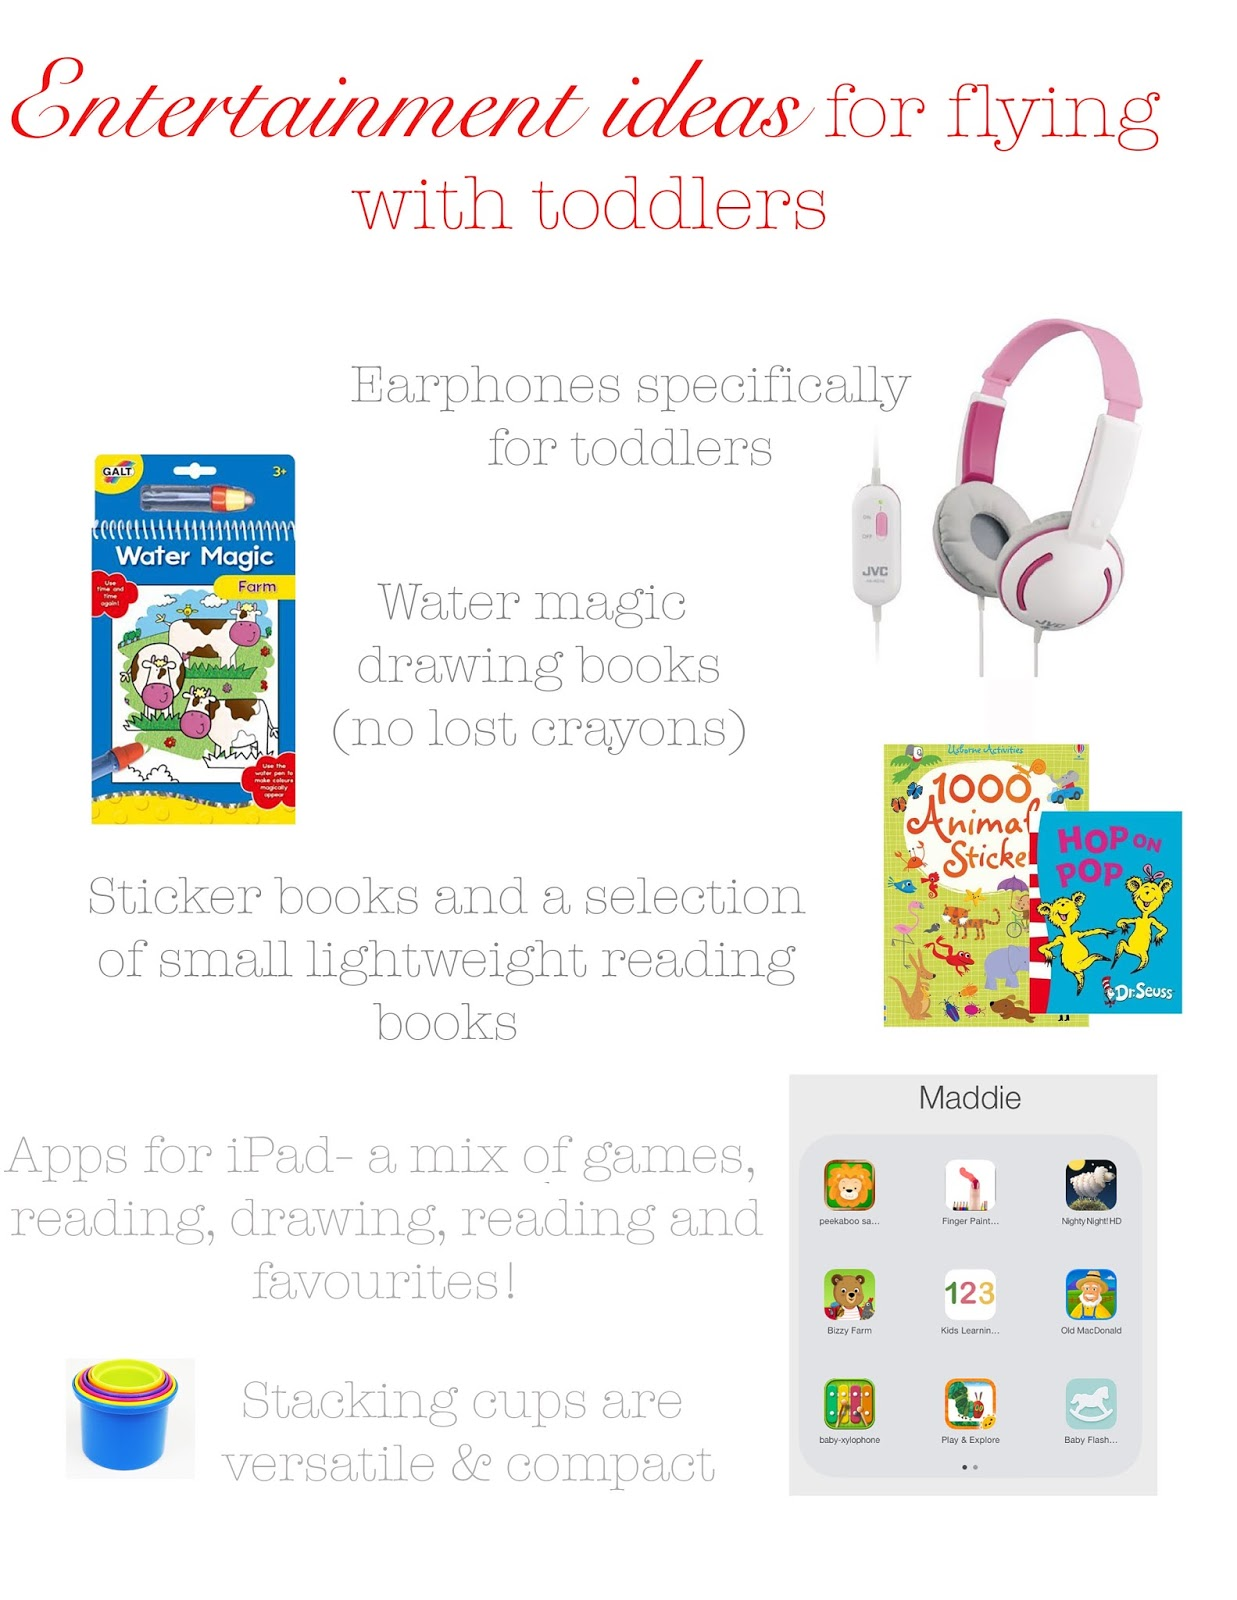 meg-made Golden entertainment ideas for flying with toddlers